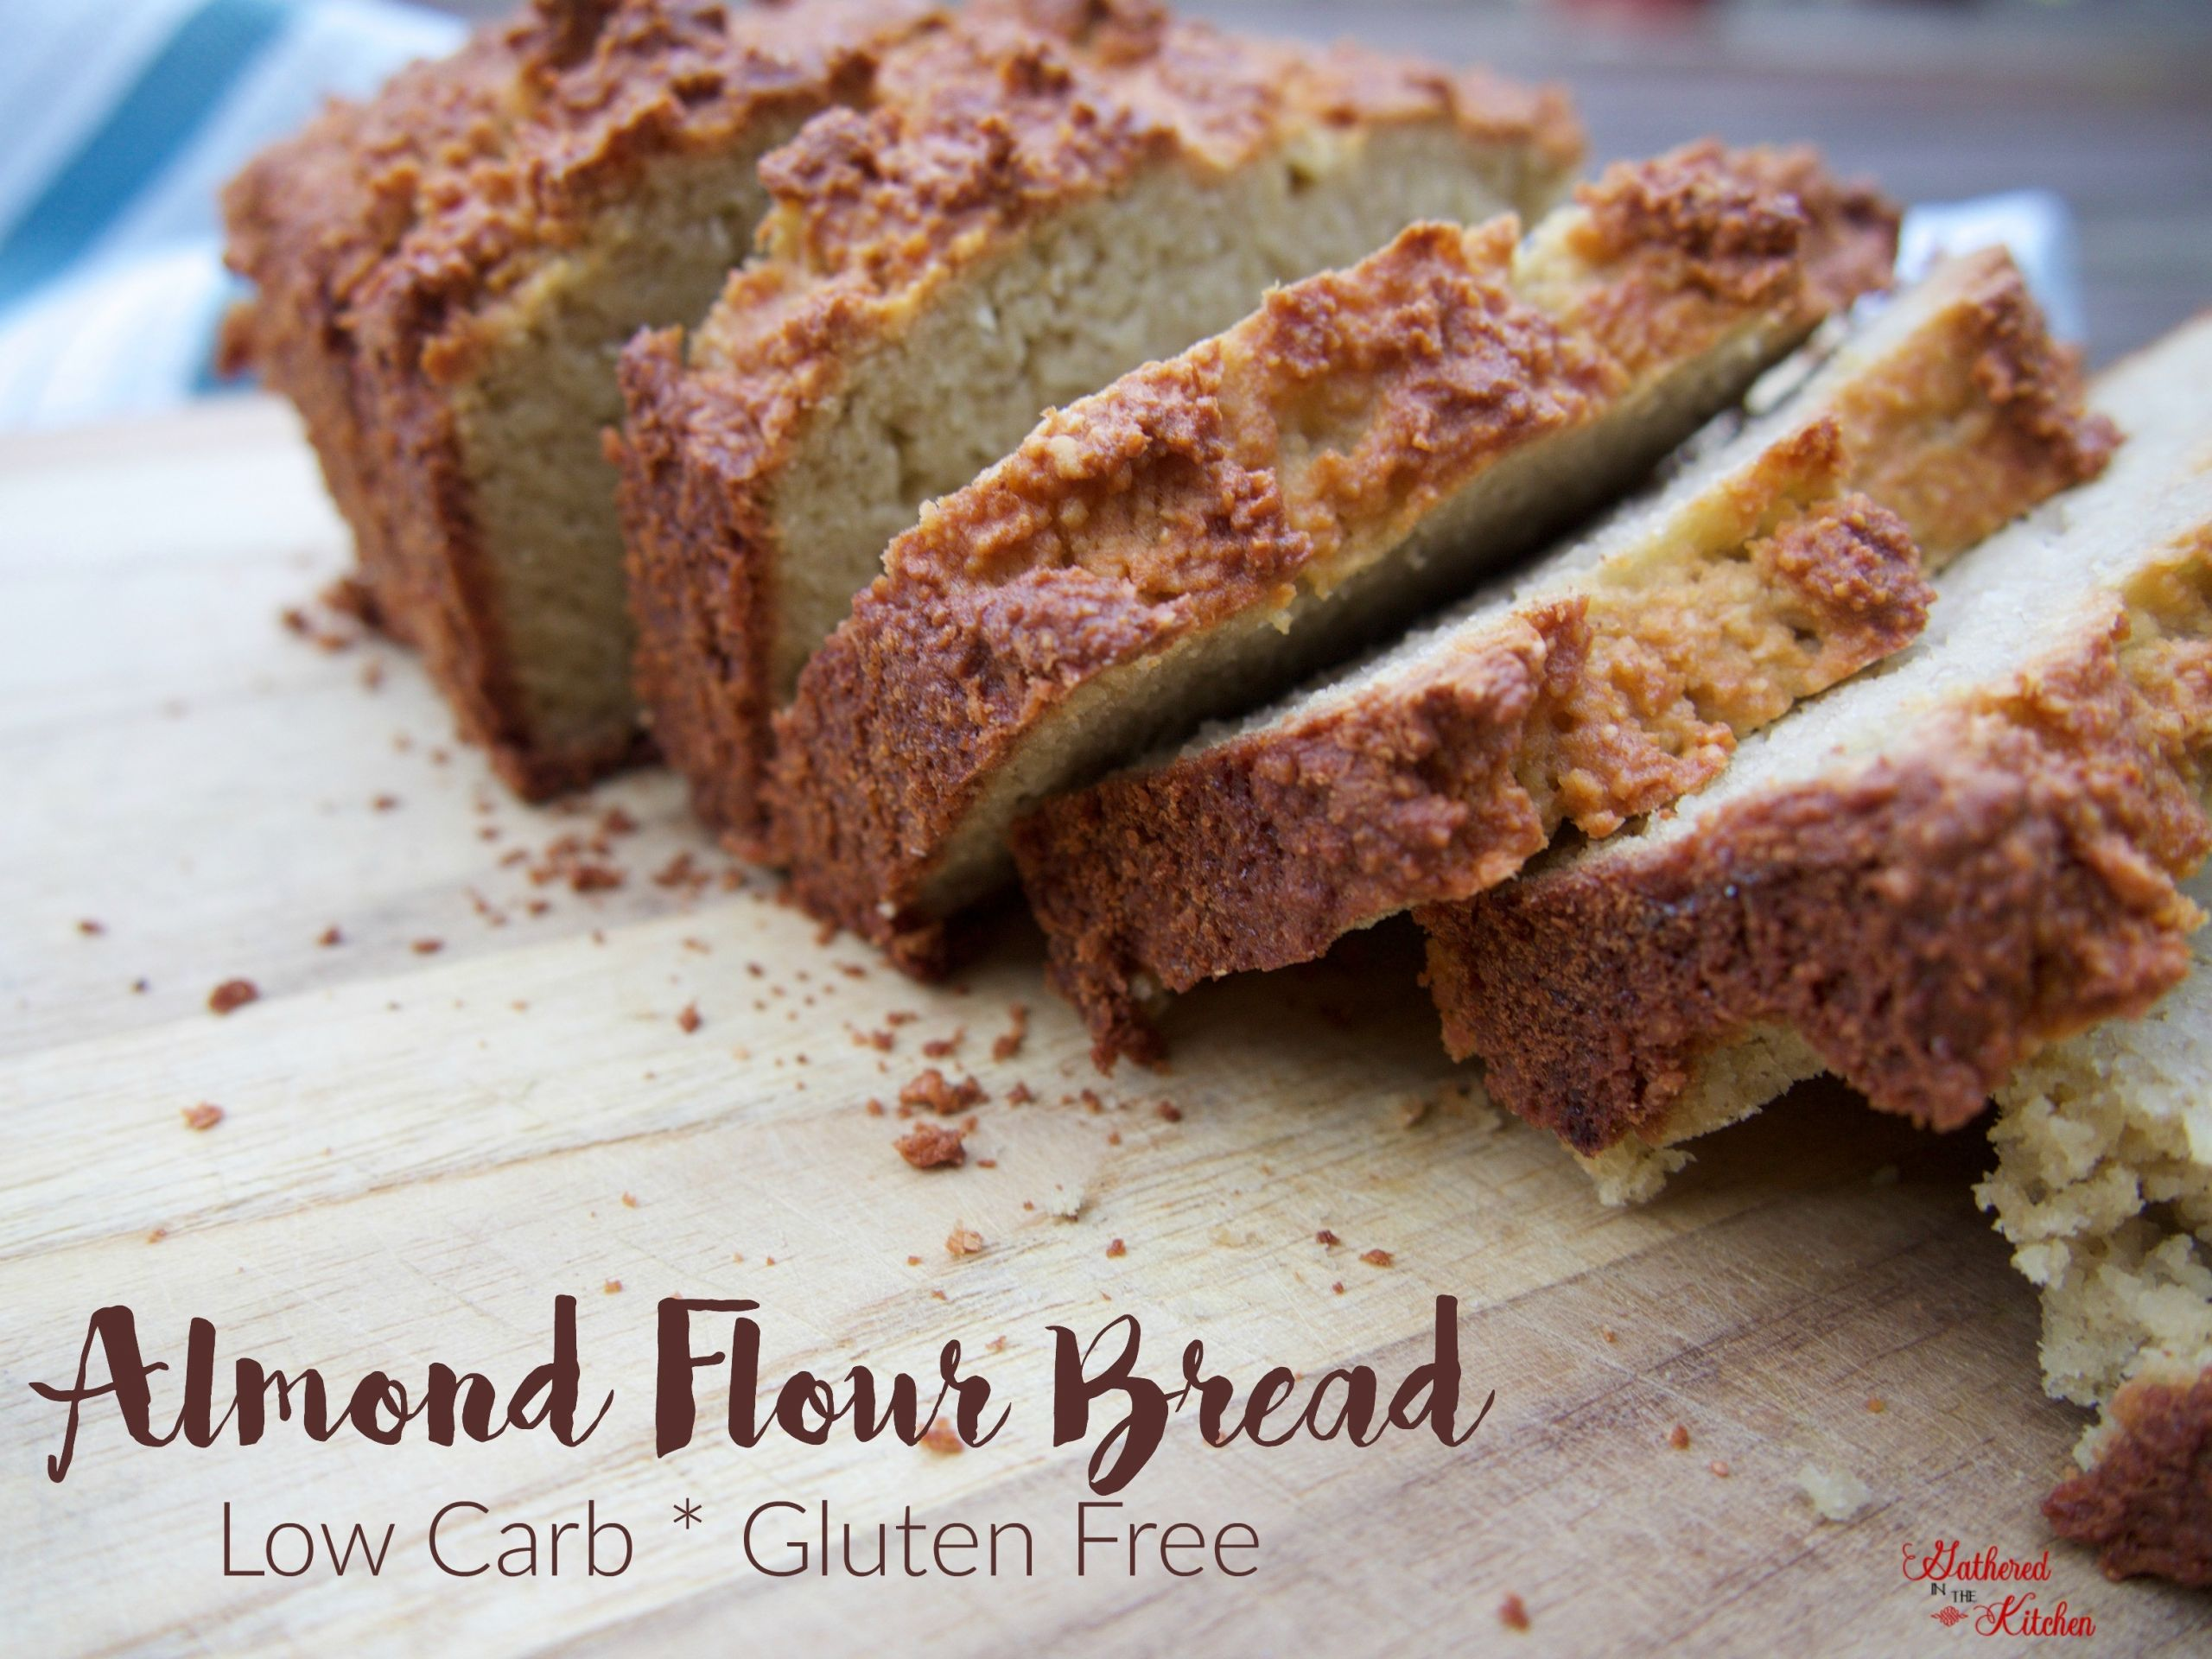 Low Carb Bread Recipes Almond Flour  Almond Flour Bread Low Carb & Gluten Free Gathered In